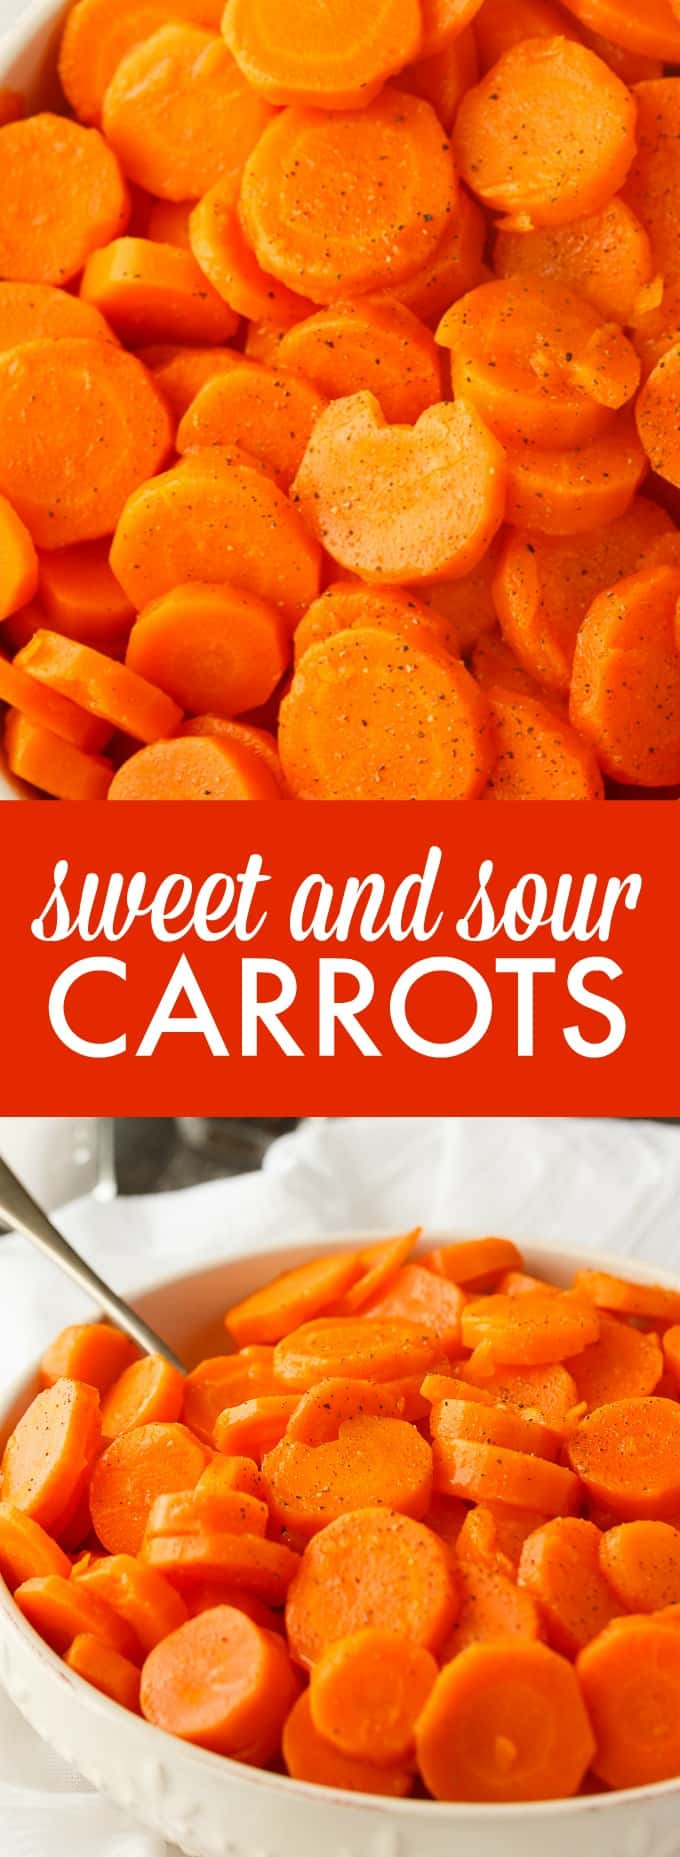 Sweet and Sour Carrots - A mouthwatering side dish for chicken or beef. Each bite is the perfect blend of sweet and sour flavors. Serve them for Thanksgiving or Christmas dinner.